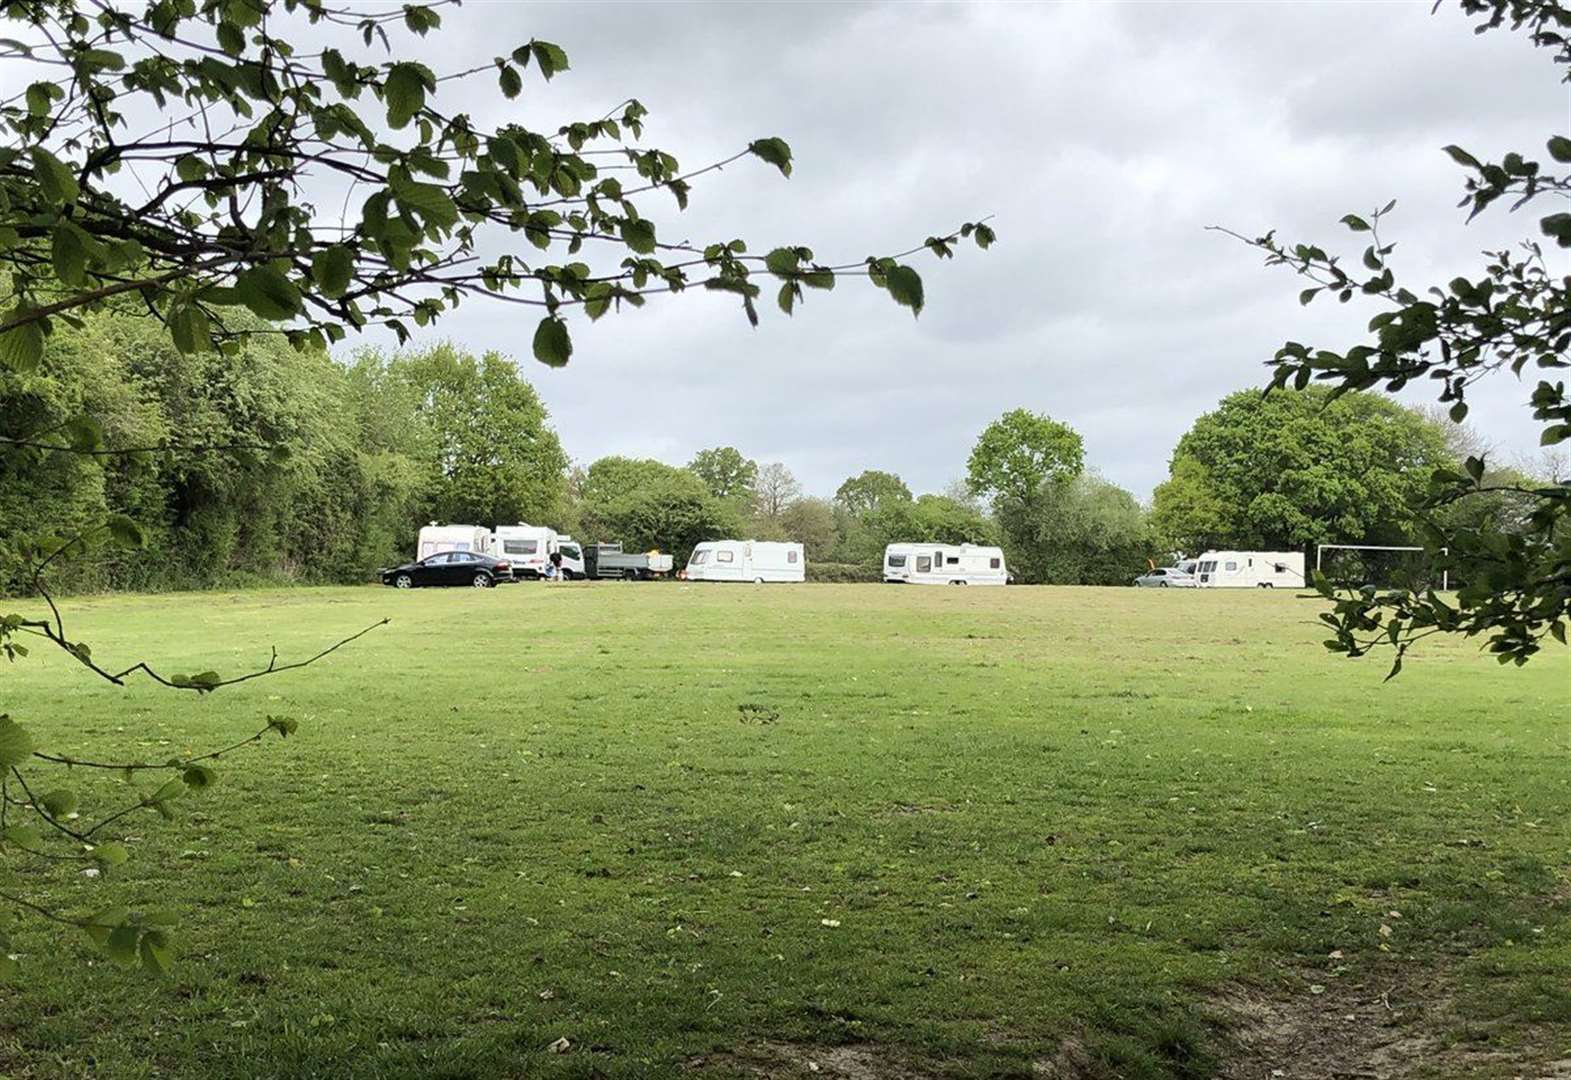 School to recover its football pitch from travellers